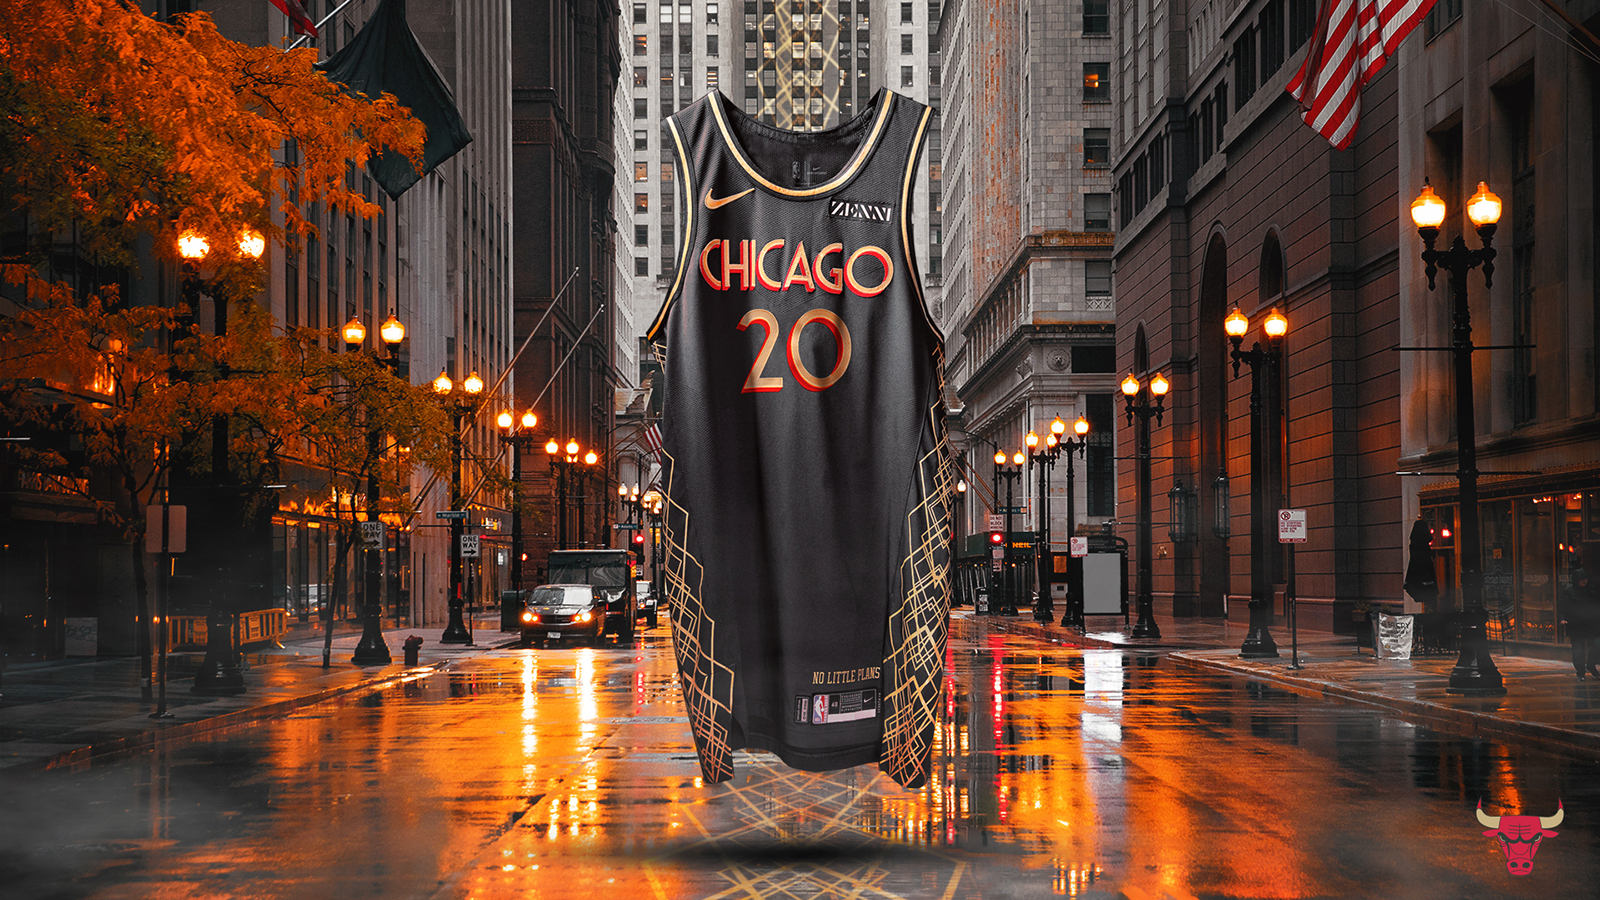 The Bulls have unveiled this season's City Edition jersey.